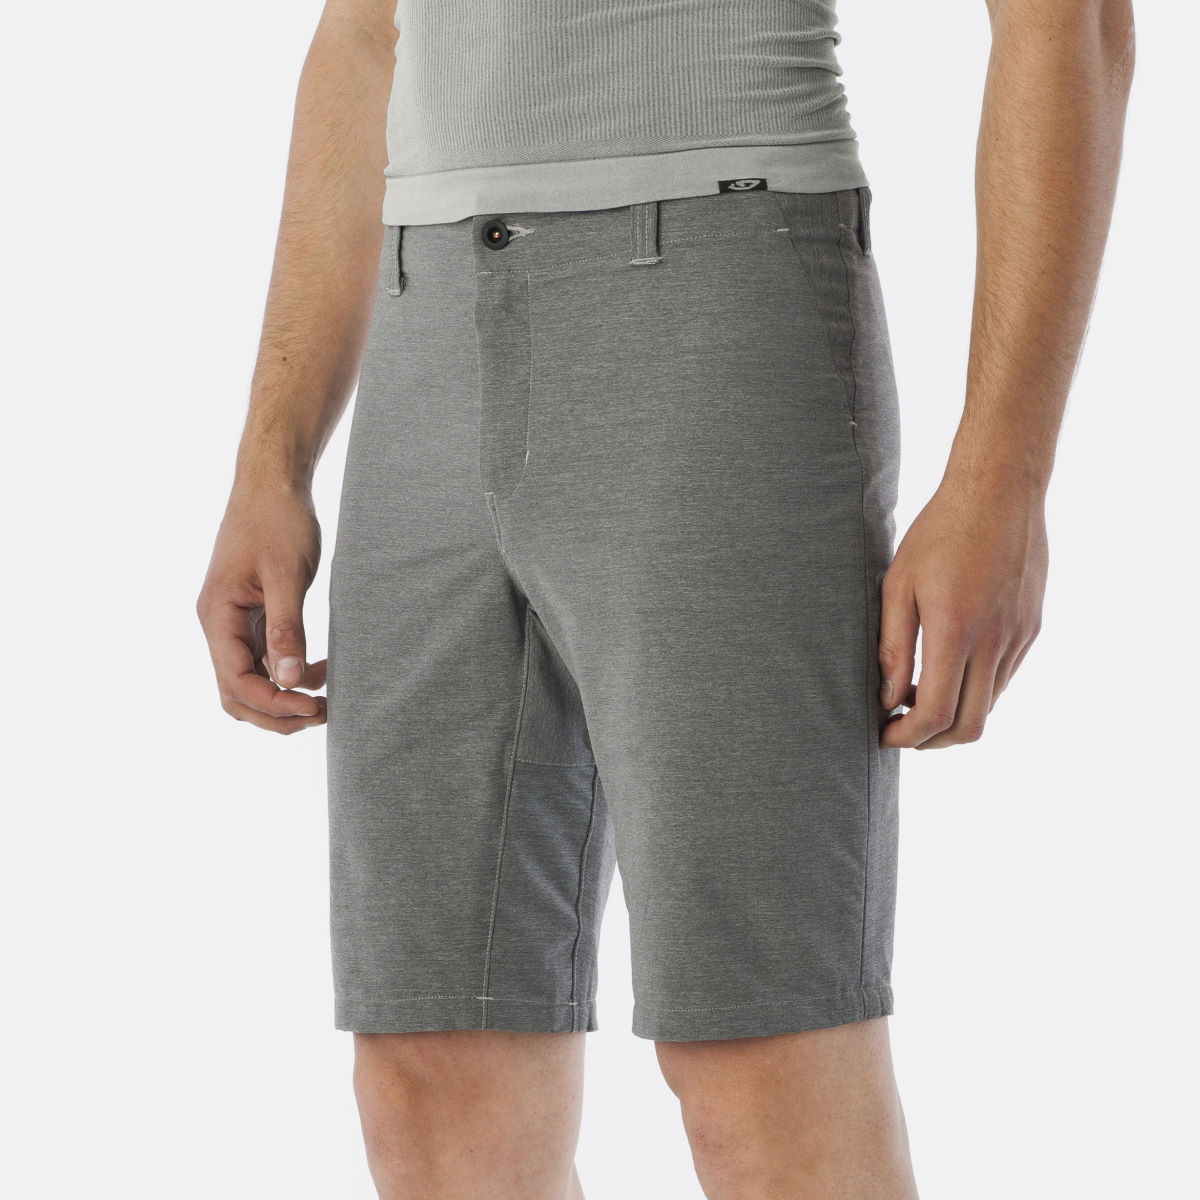 Giro Ride Shorts